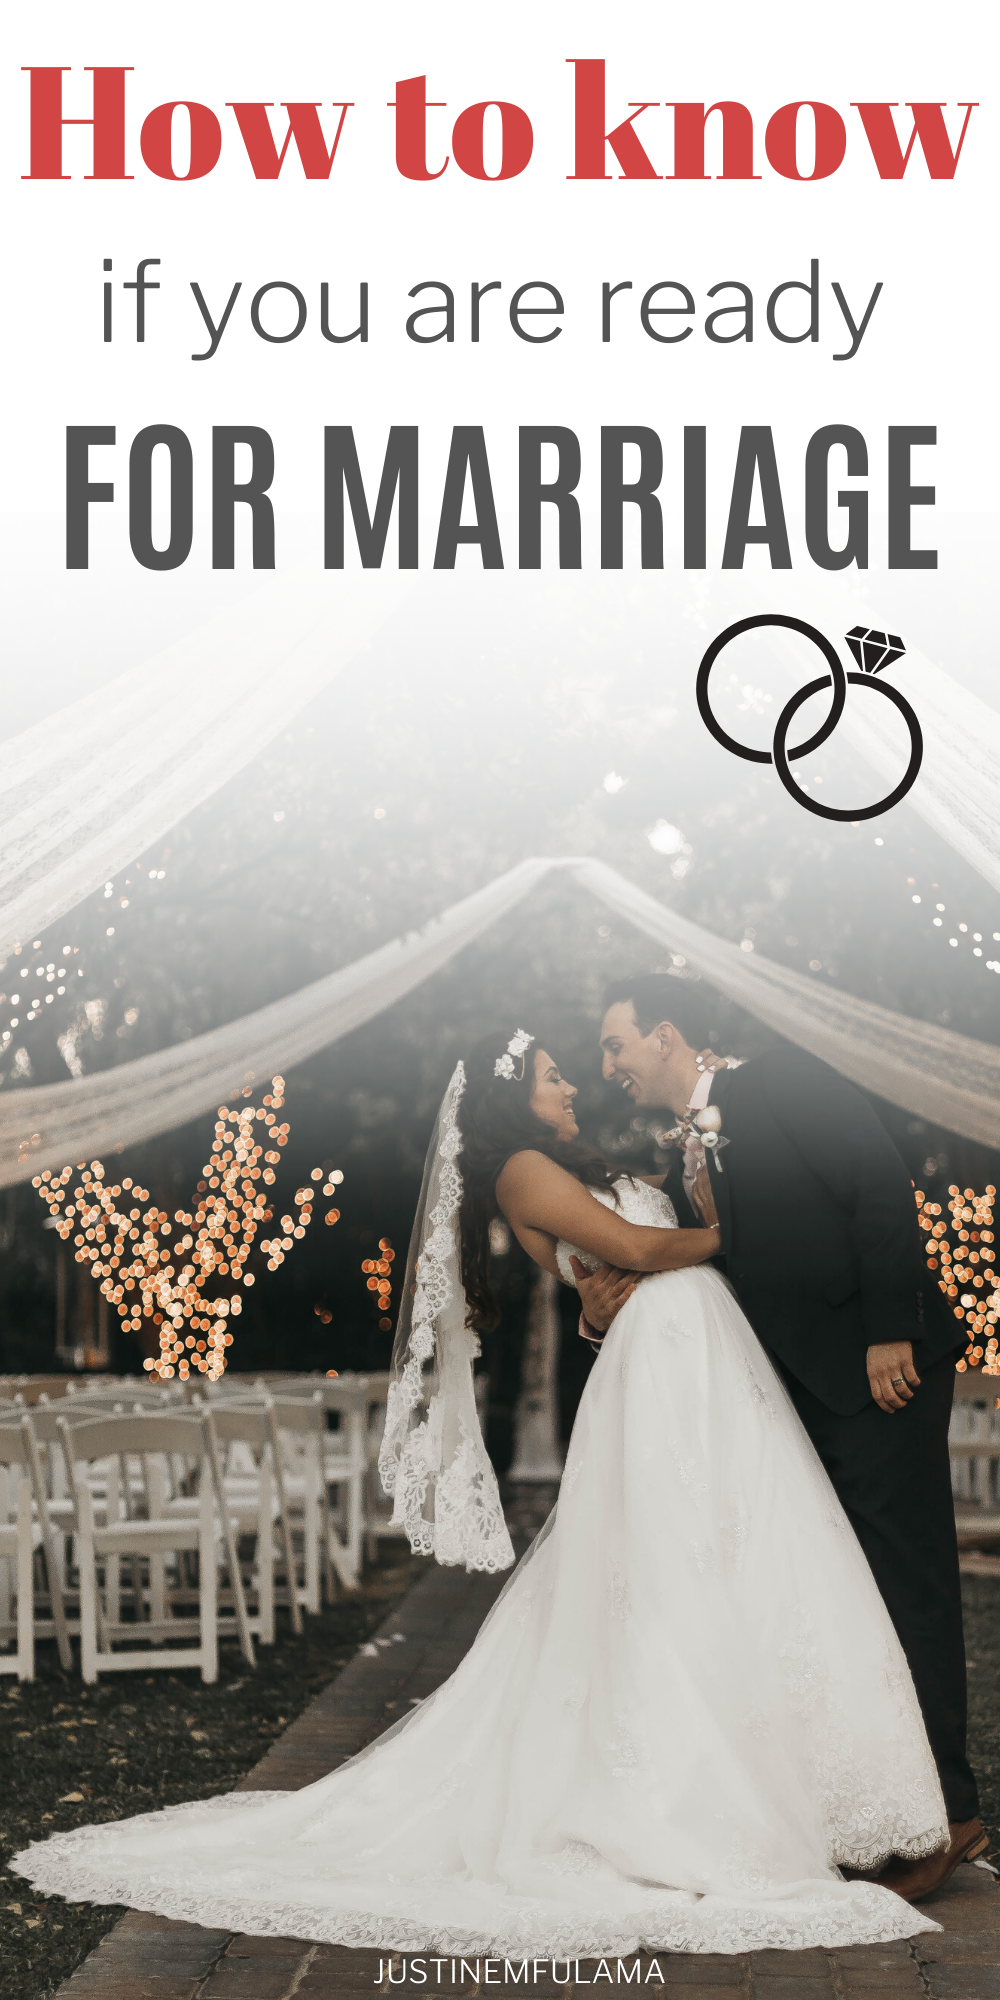 9061bdd7b0836254aa899baaa5e9358c - How Did You Know You Were Ready To Get Married